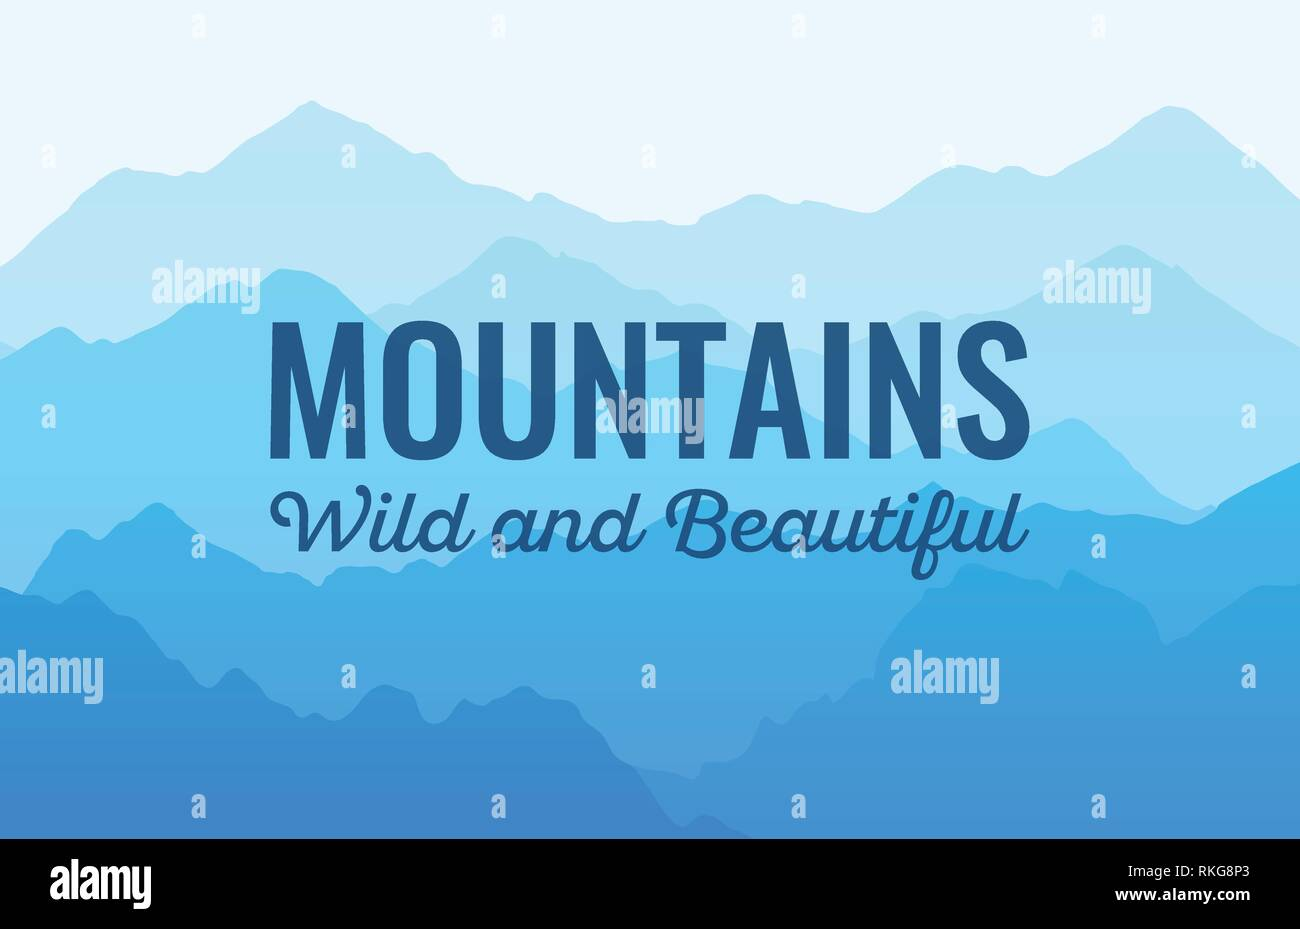 Mountauns, Wild and Beautiful - Vector scenic landscape - Stock Vector